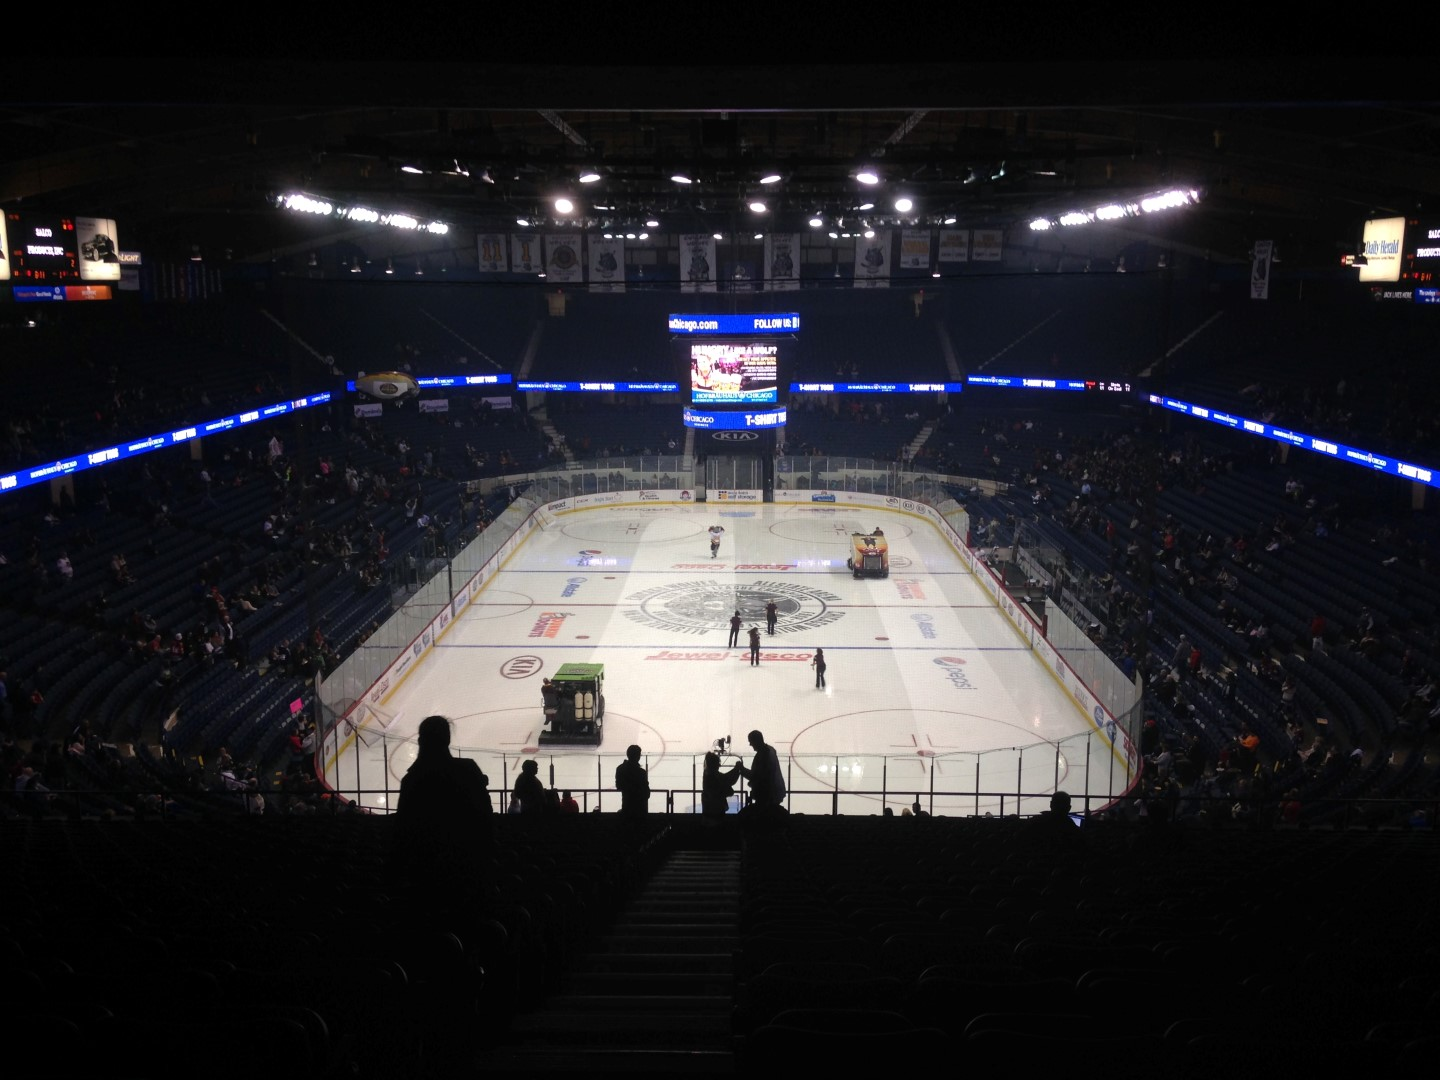 Wolves vs Admirals @ Allstate Arena – Feb 11, 2015